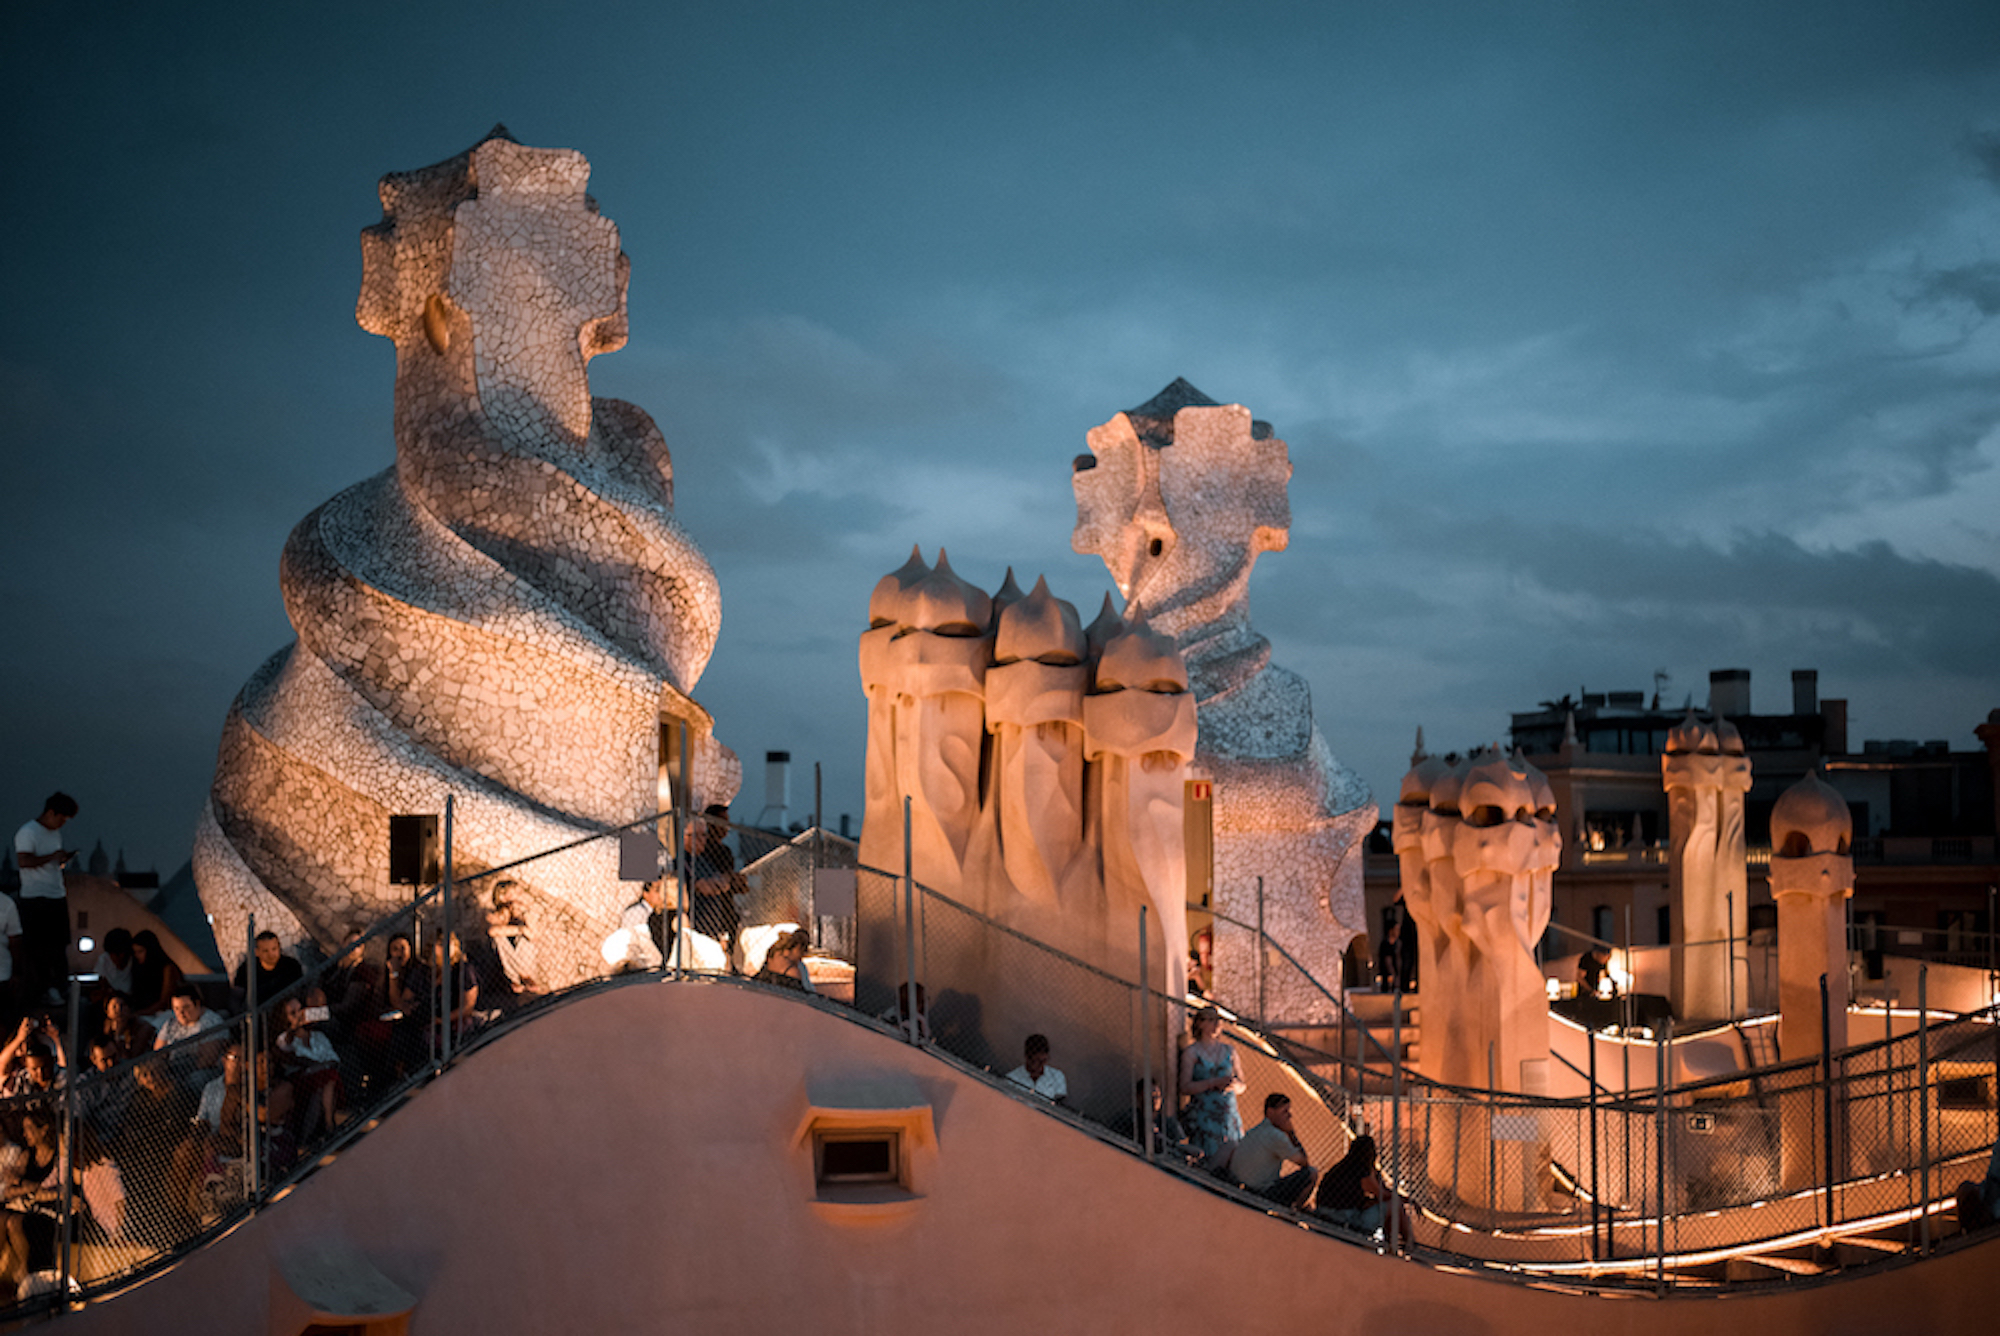 Live Music on Rooftop of La Pedrera Antoni Gaudi Building in Barcelona - by Ben Holbrook from DriftwoodJournals.com3